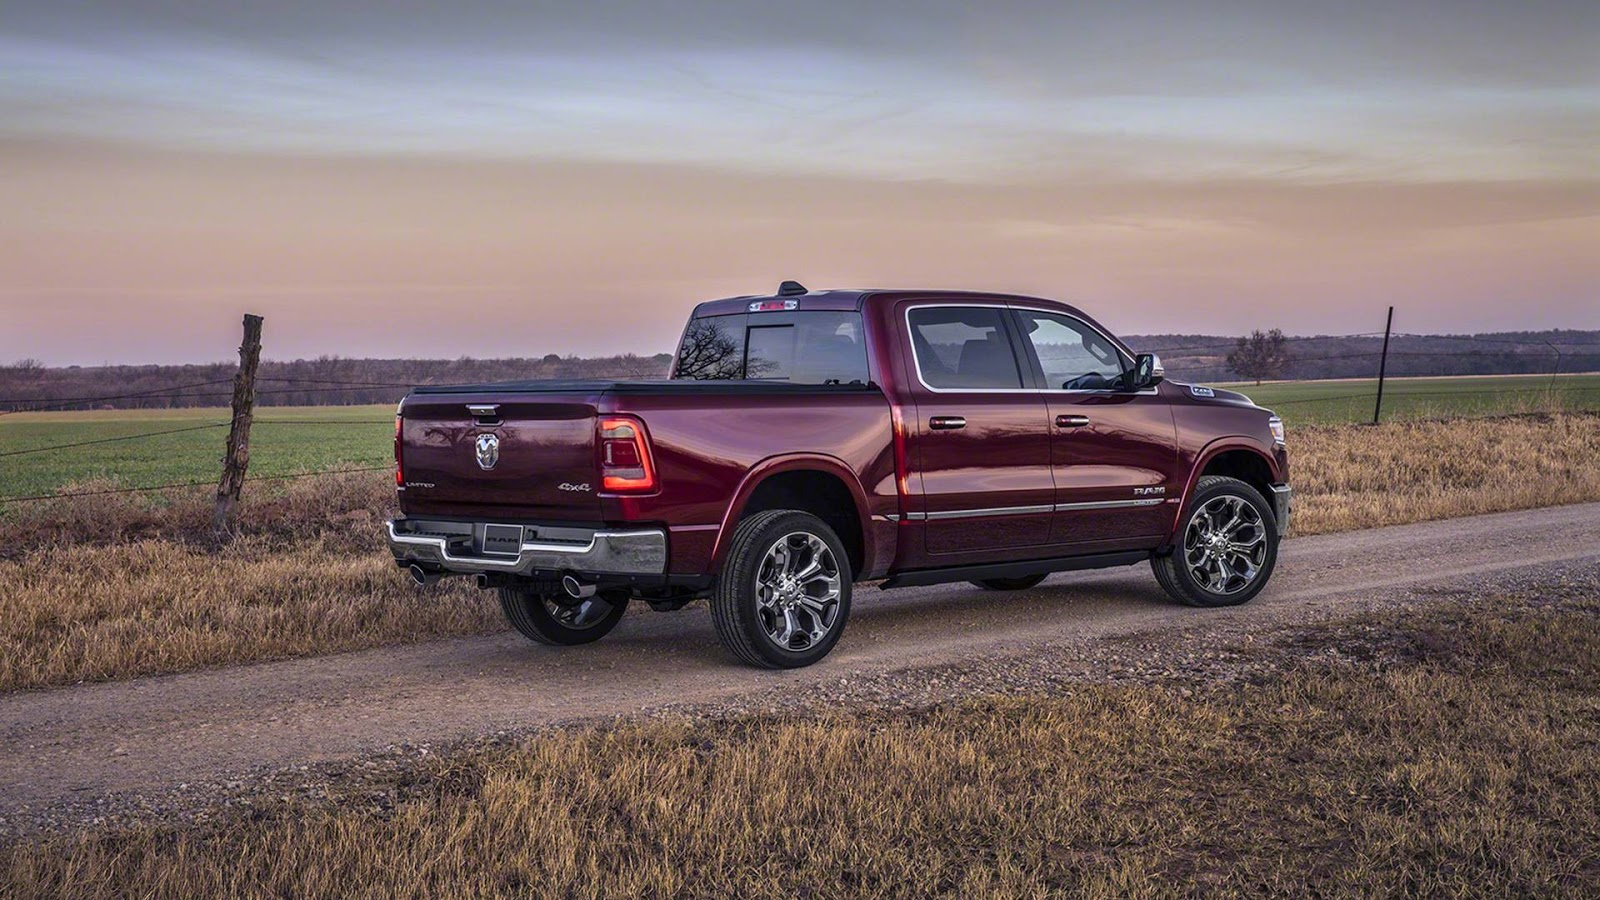 2019 Ram 1500 Easter Egg Is An Indicator For The 707 Hp Ram Hellcat